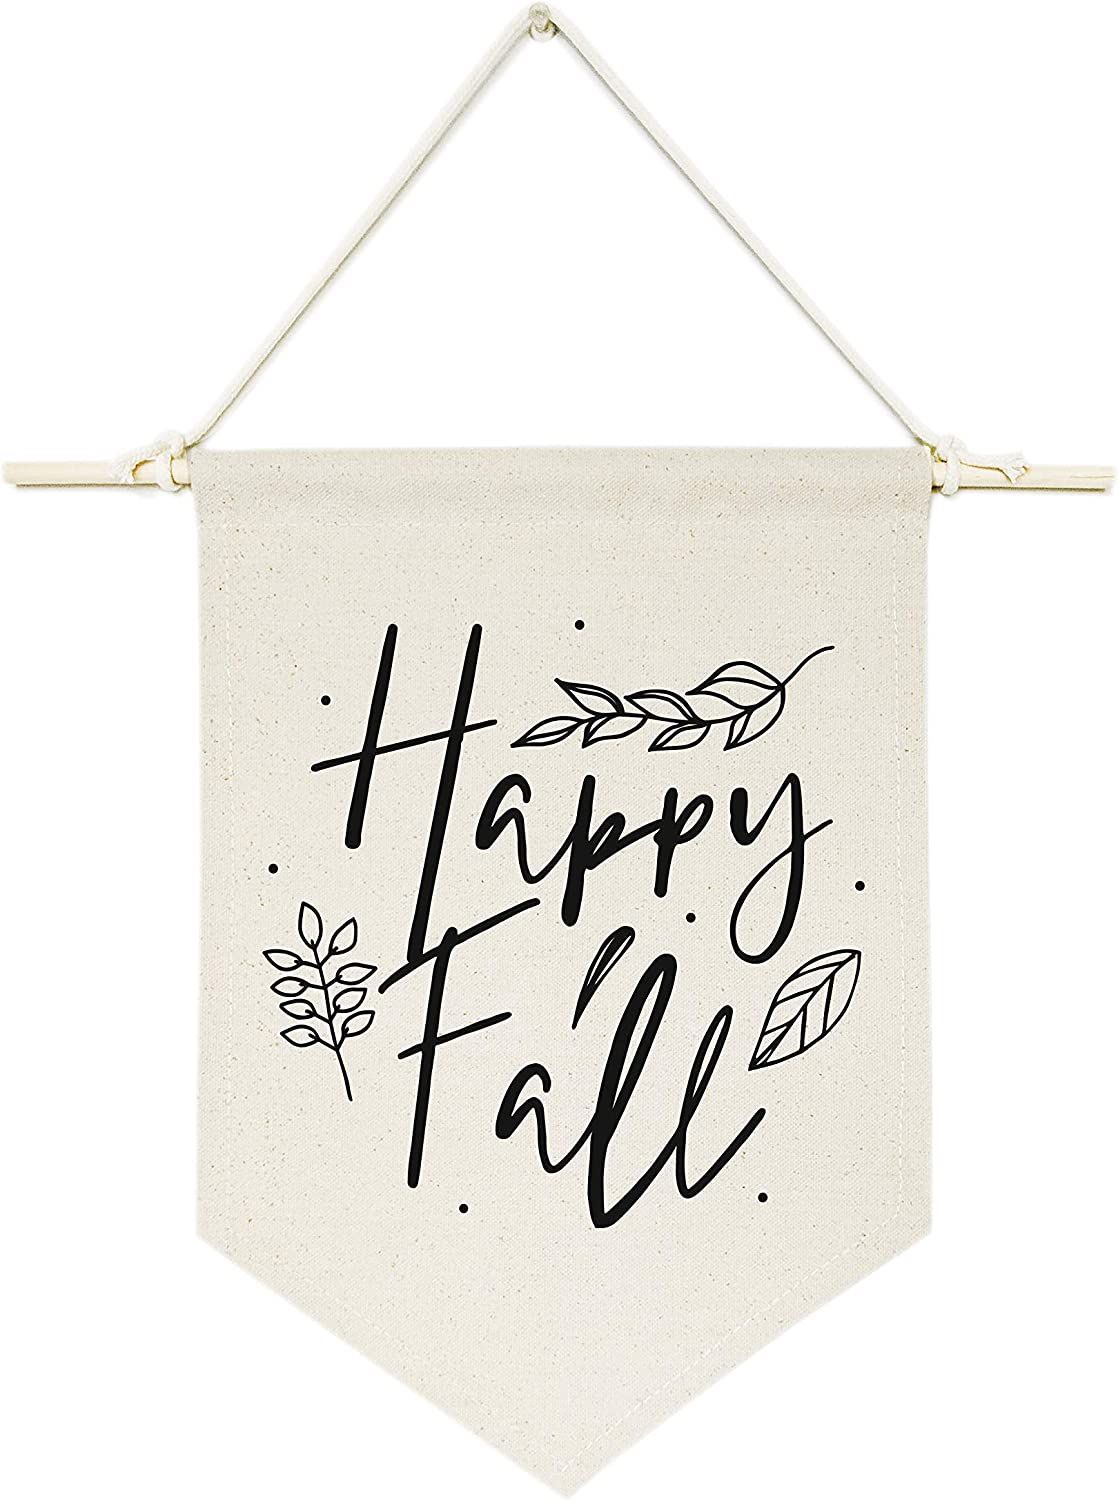 The Cotton & Canvas Co. Happy Fall! Hanging Wall Canvas Banner, Thanksgiving, Autumn and Fall Decor